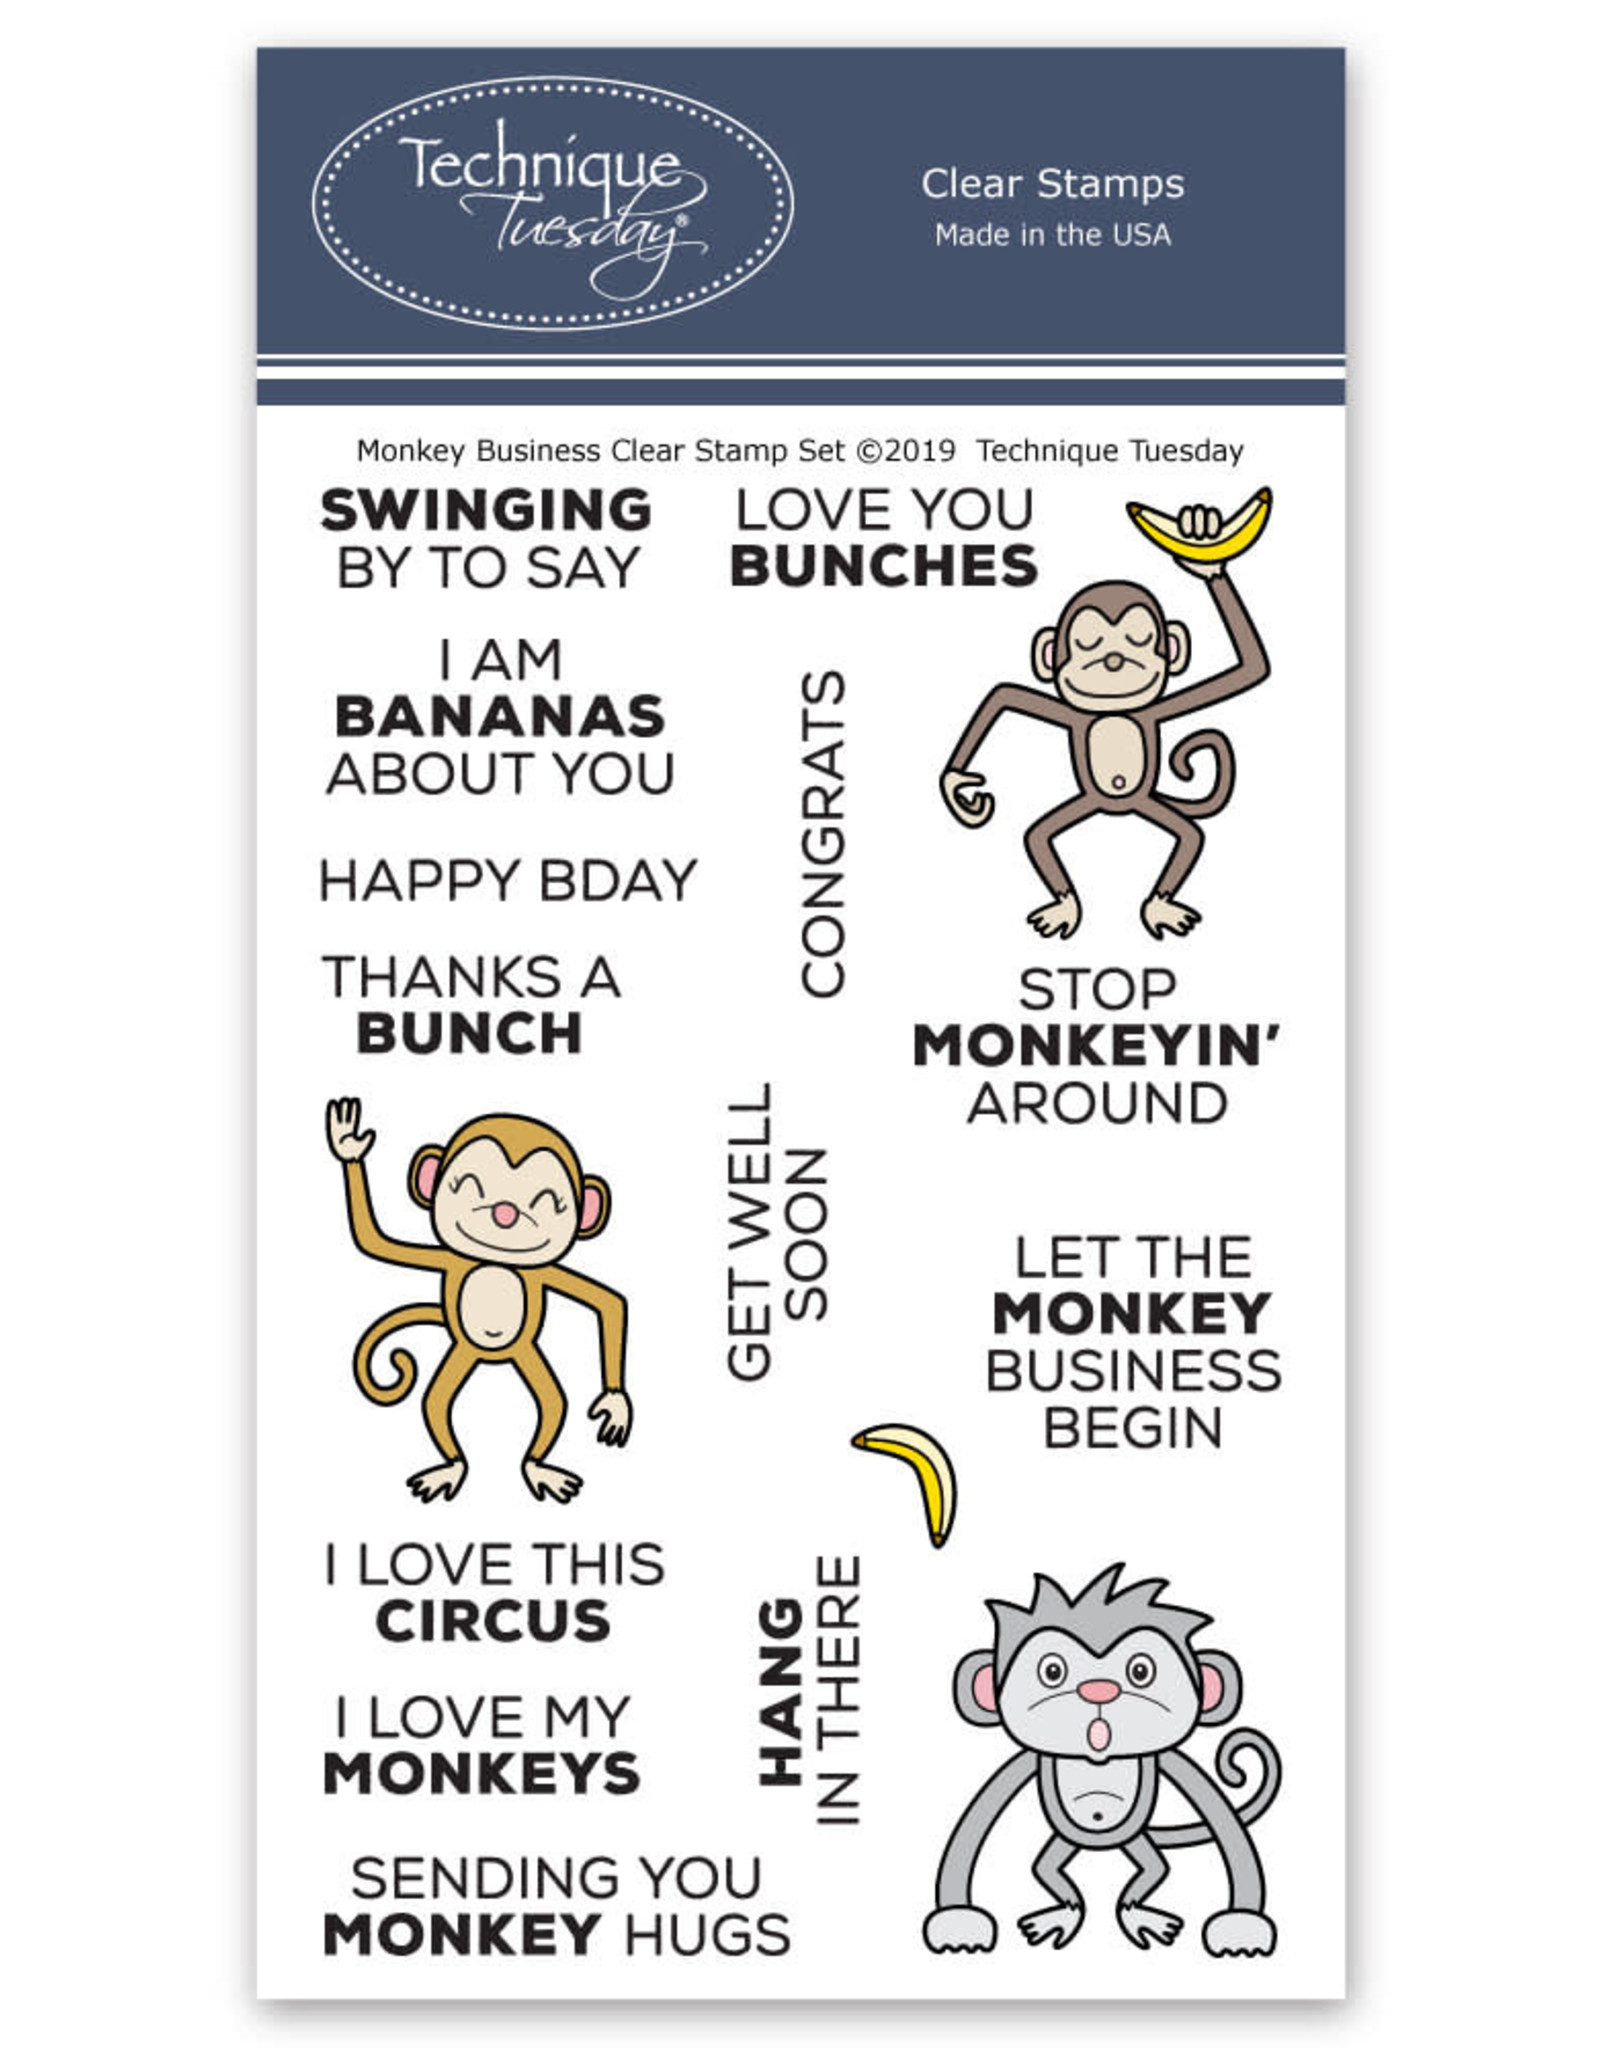 Technique Tuesday Monkey Business Clear Stamp Set